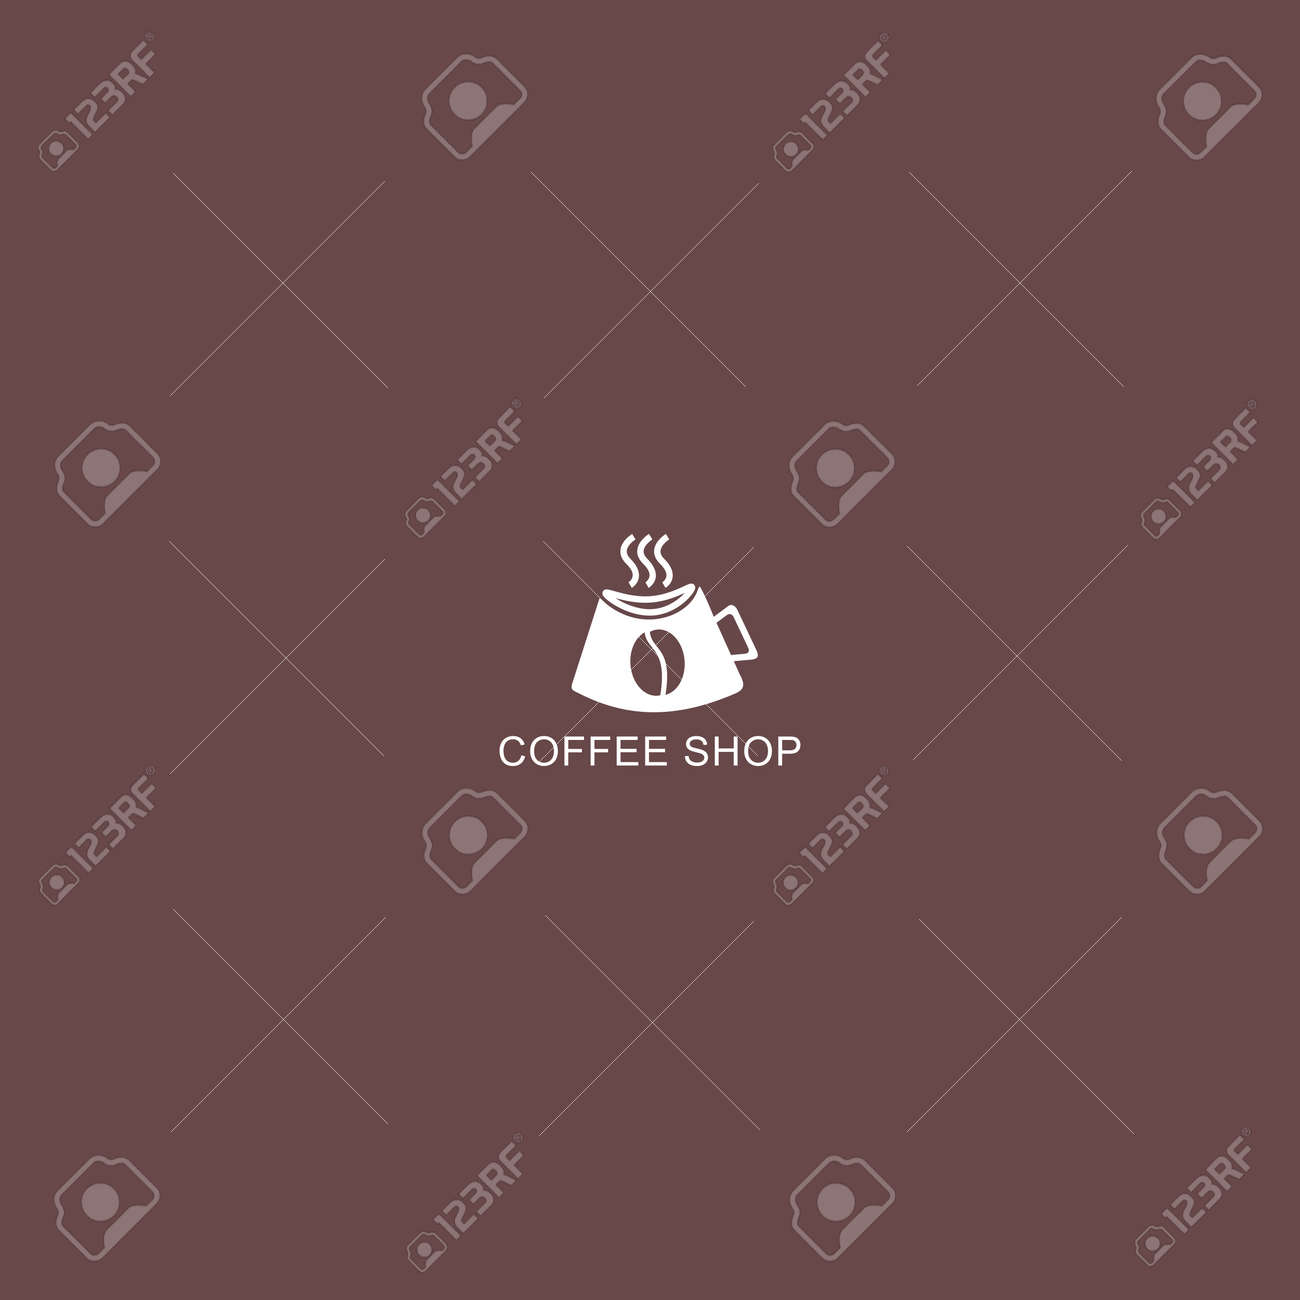 Coffee Shop Logo Simple Natural Home Logo Design Cafe Or Restaurant Royalty Free Cliparts Vectors And Stock Illustration Image 153330666